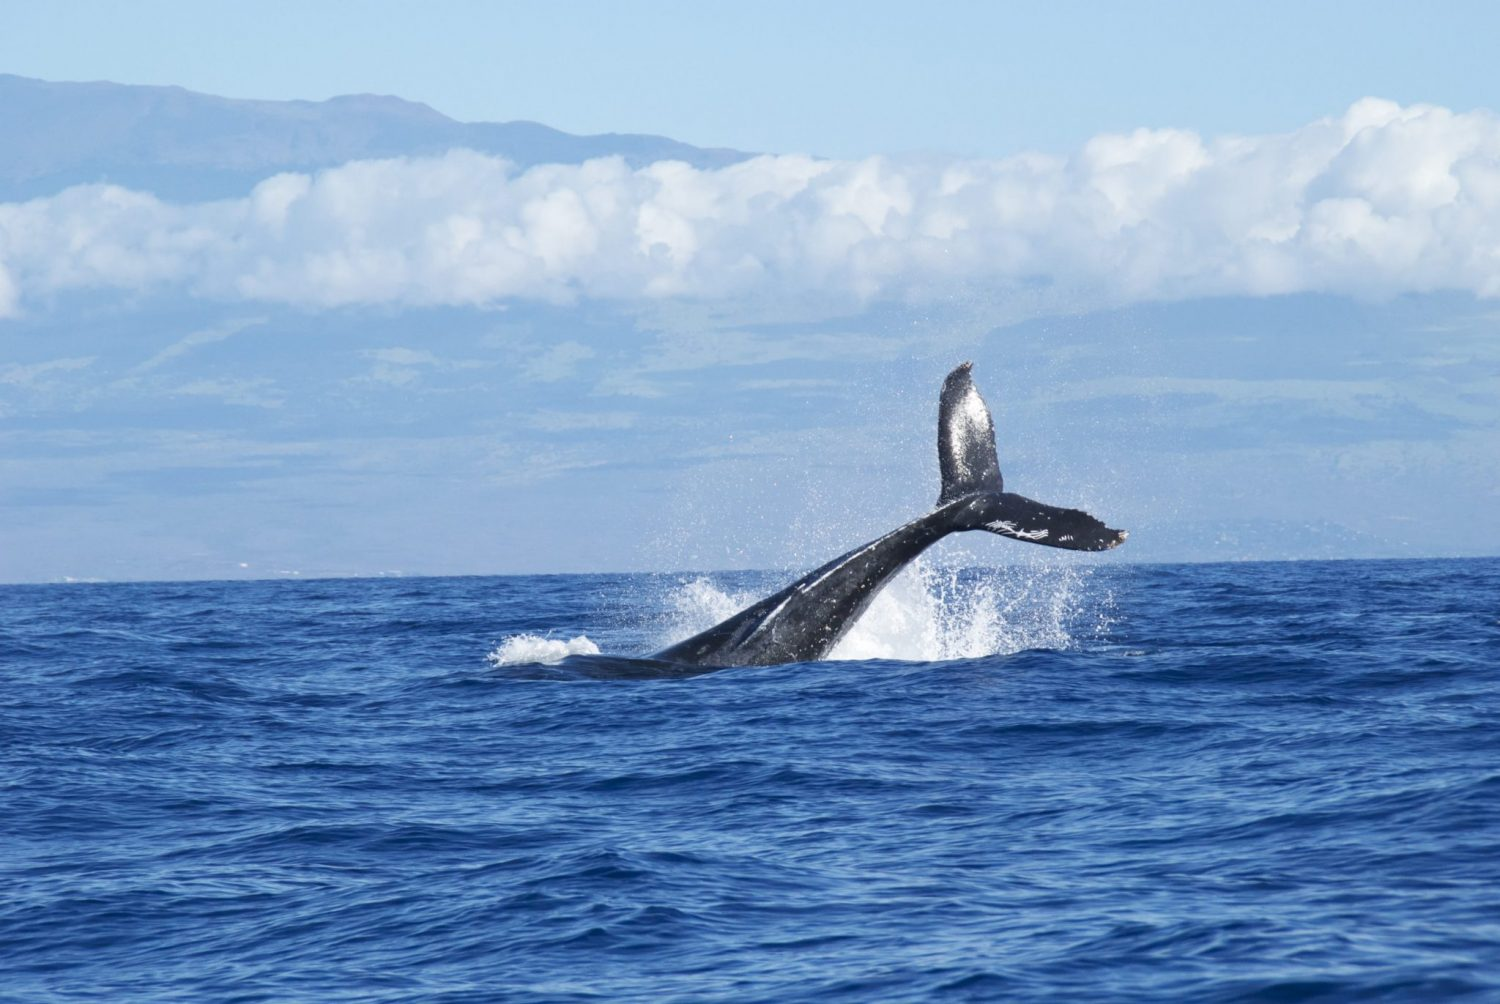 Best Travel Binoculars For Whale Watching